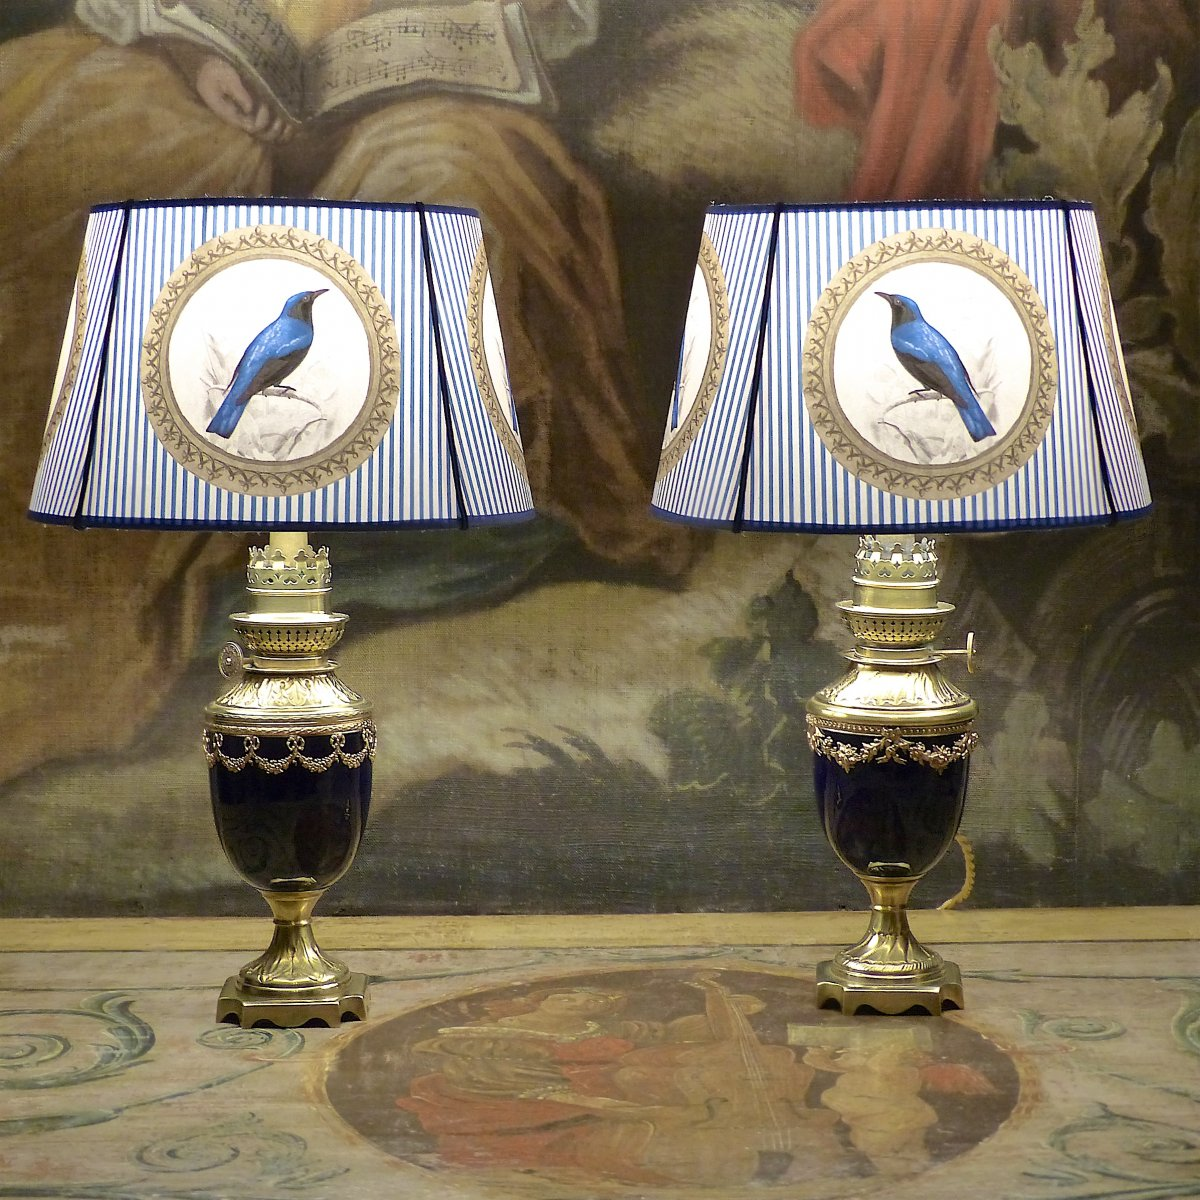 Pair Of Petroleum Lamps In Sèvres Blue Porcelain, Louis XVI Style, 19th Century